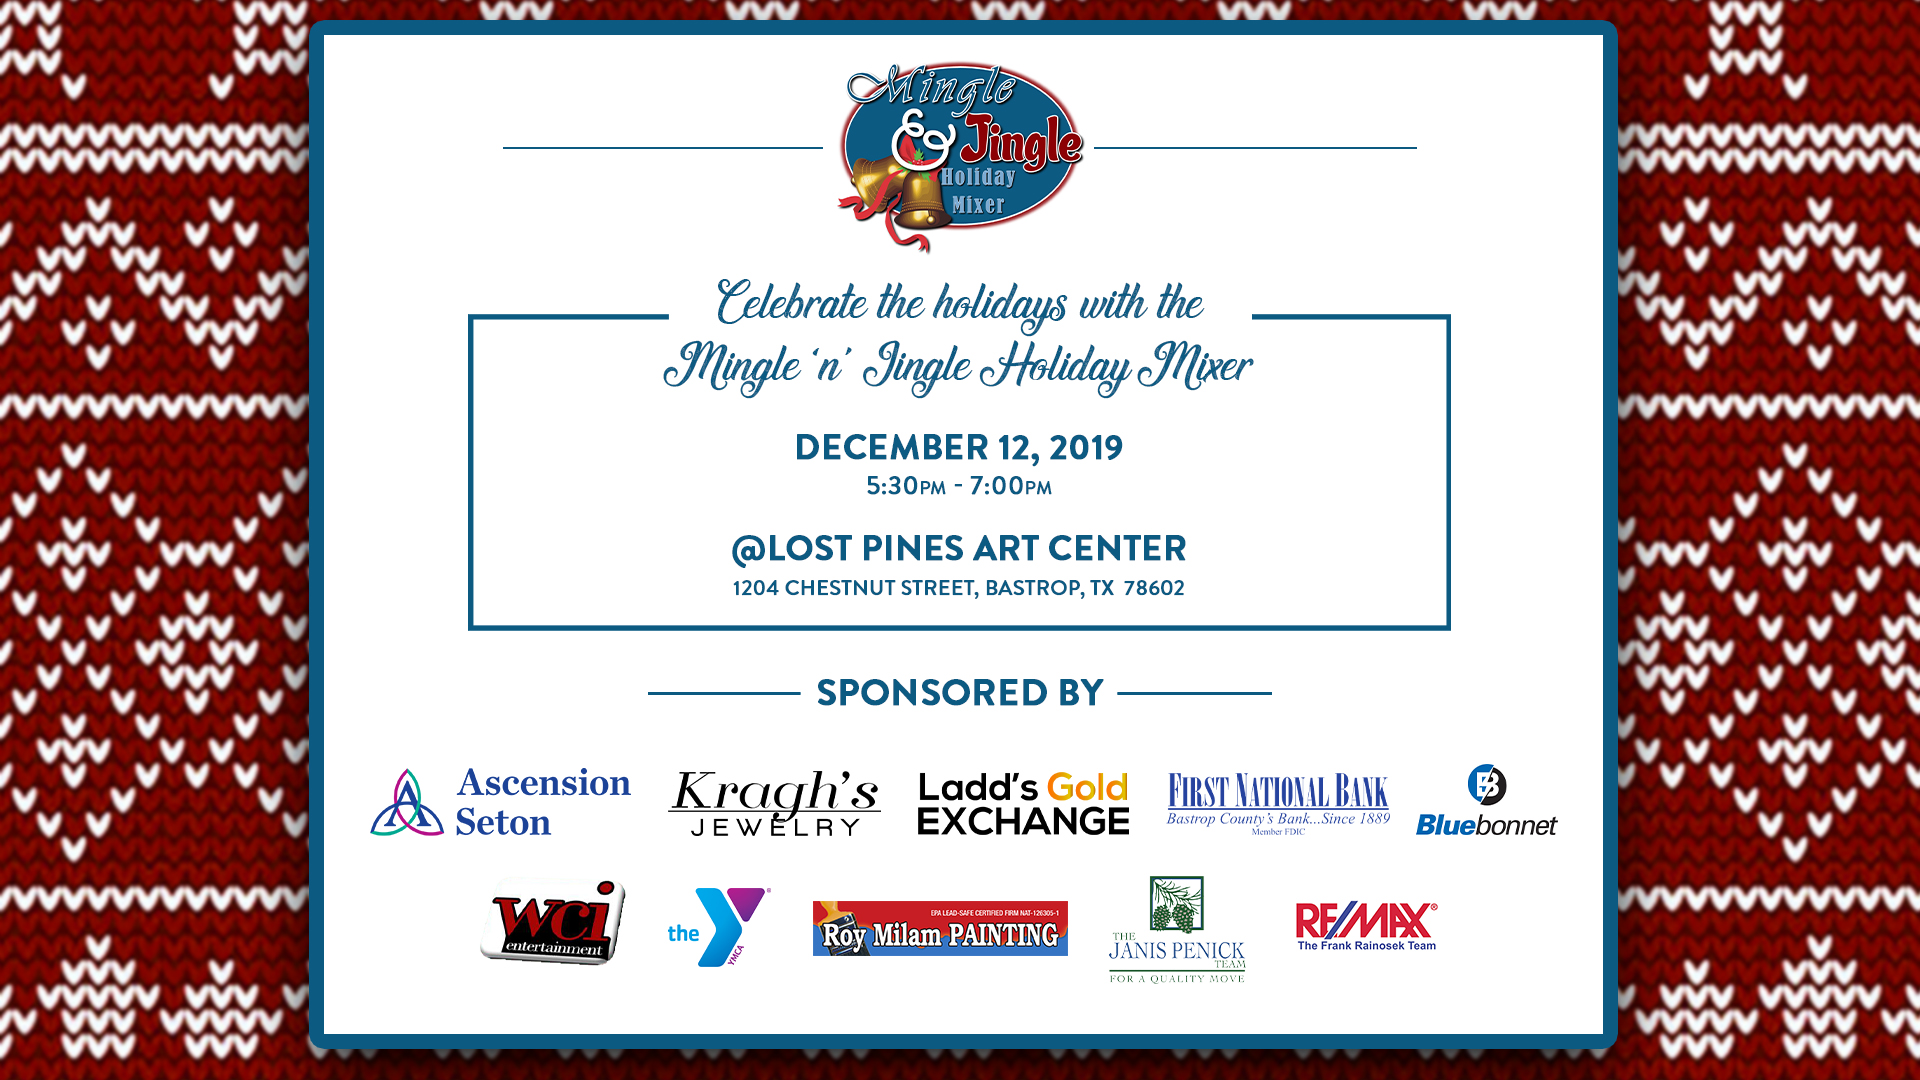 Mingle & Jingle